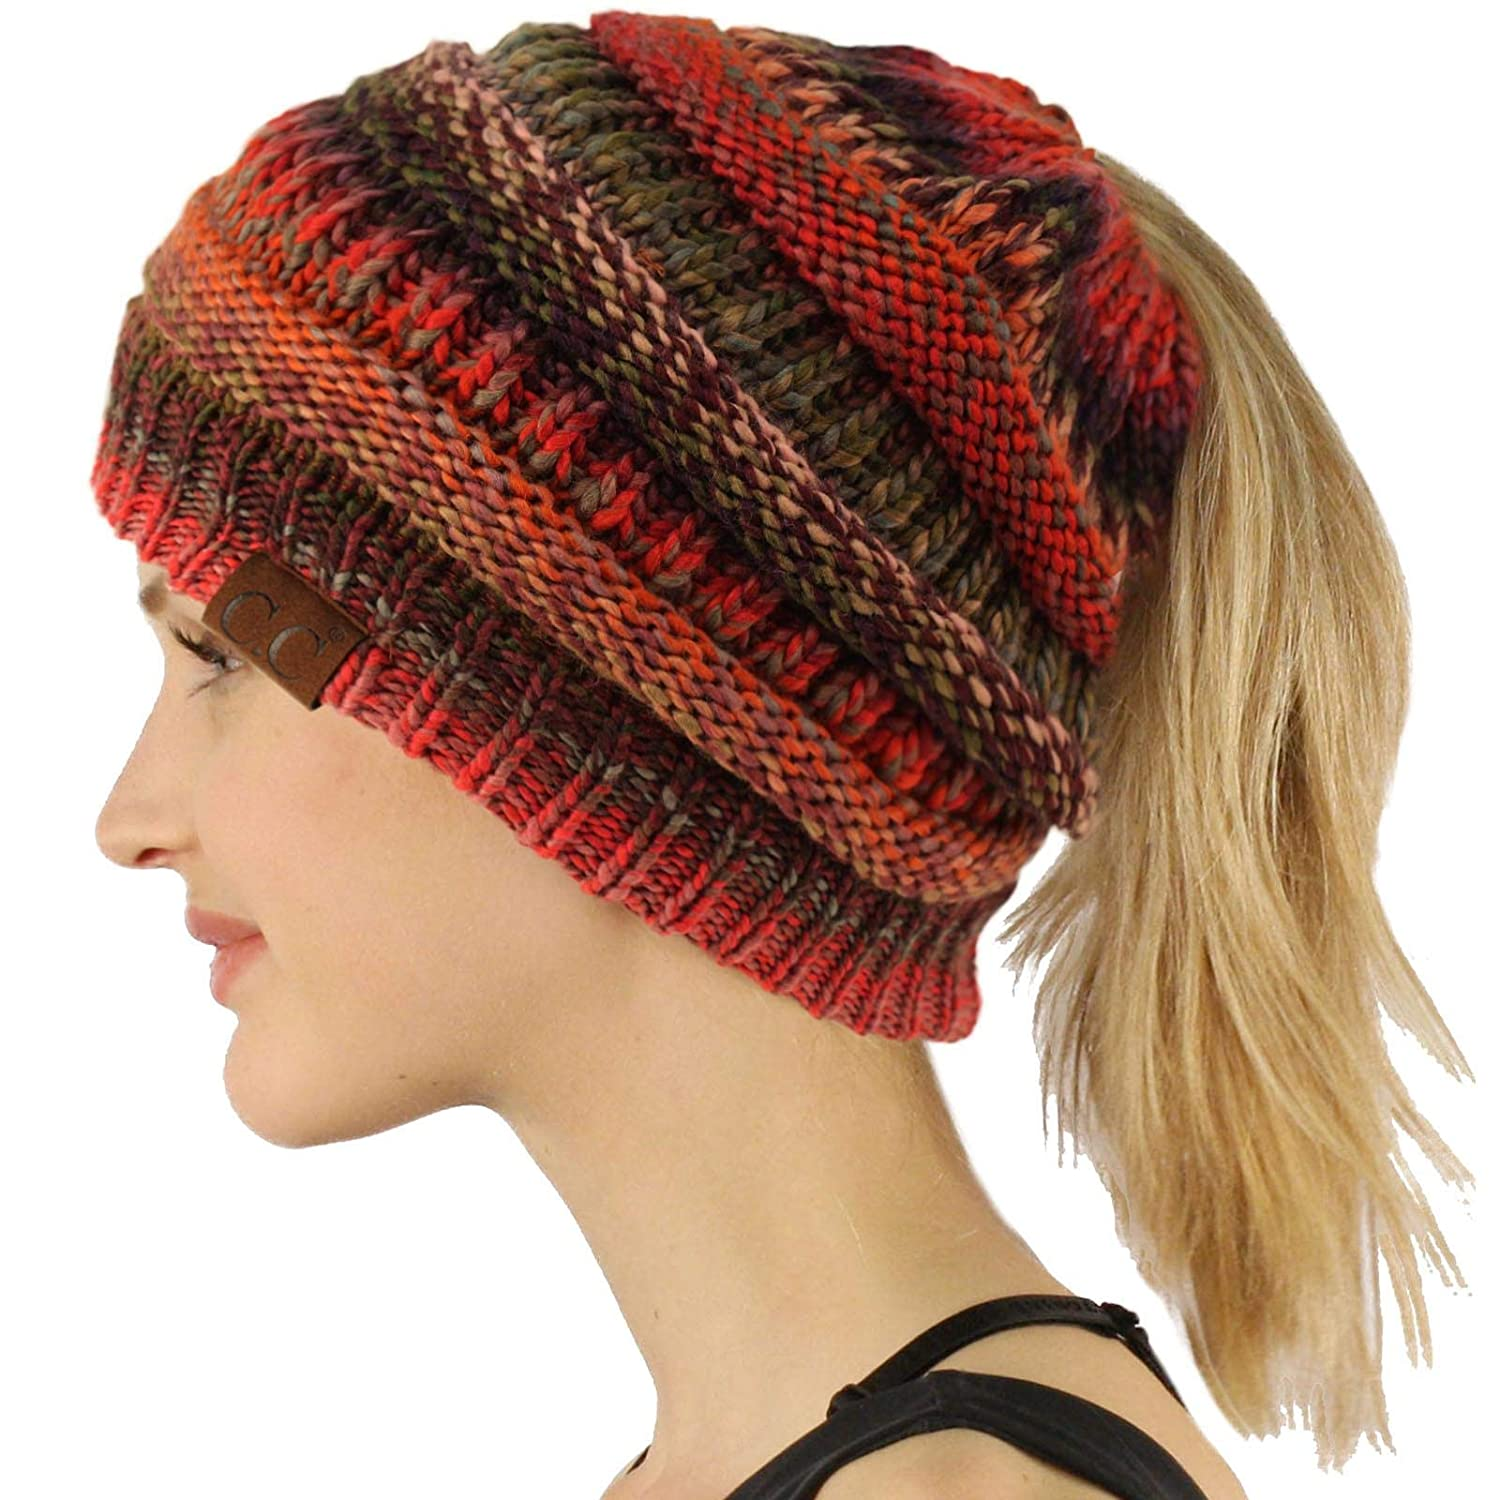 Rust Mix Ponytail Messy Bun BeanieTail Soft Winter Knit Stretchy Beanie Hat Cap